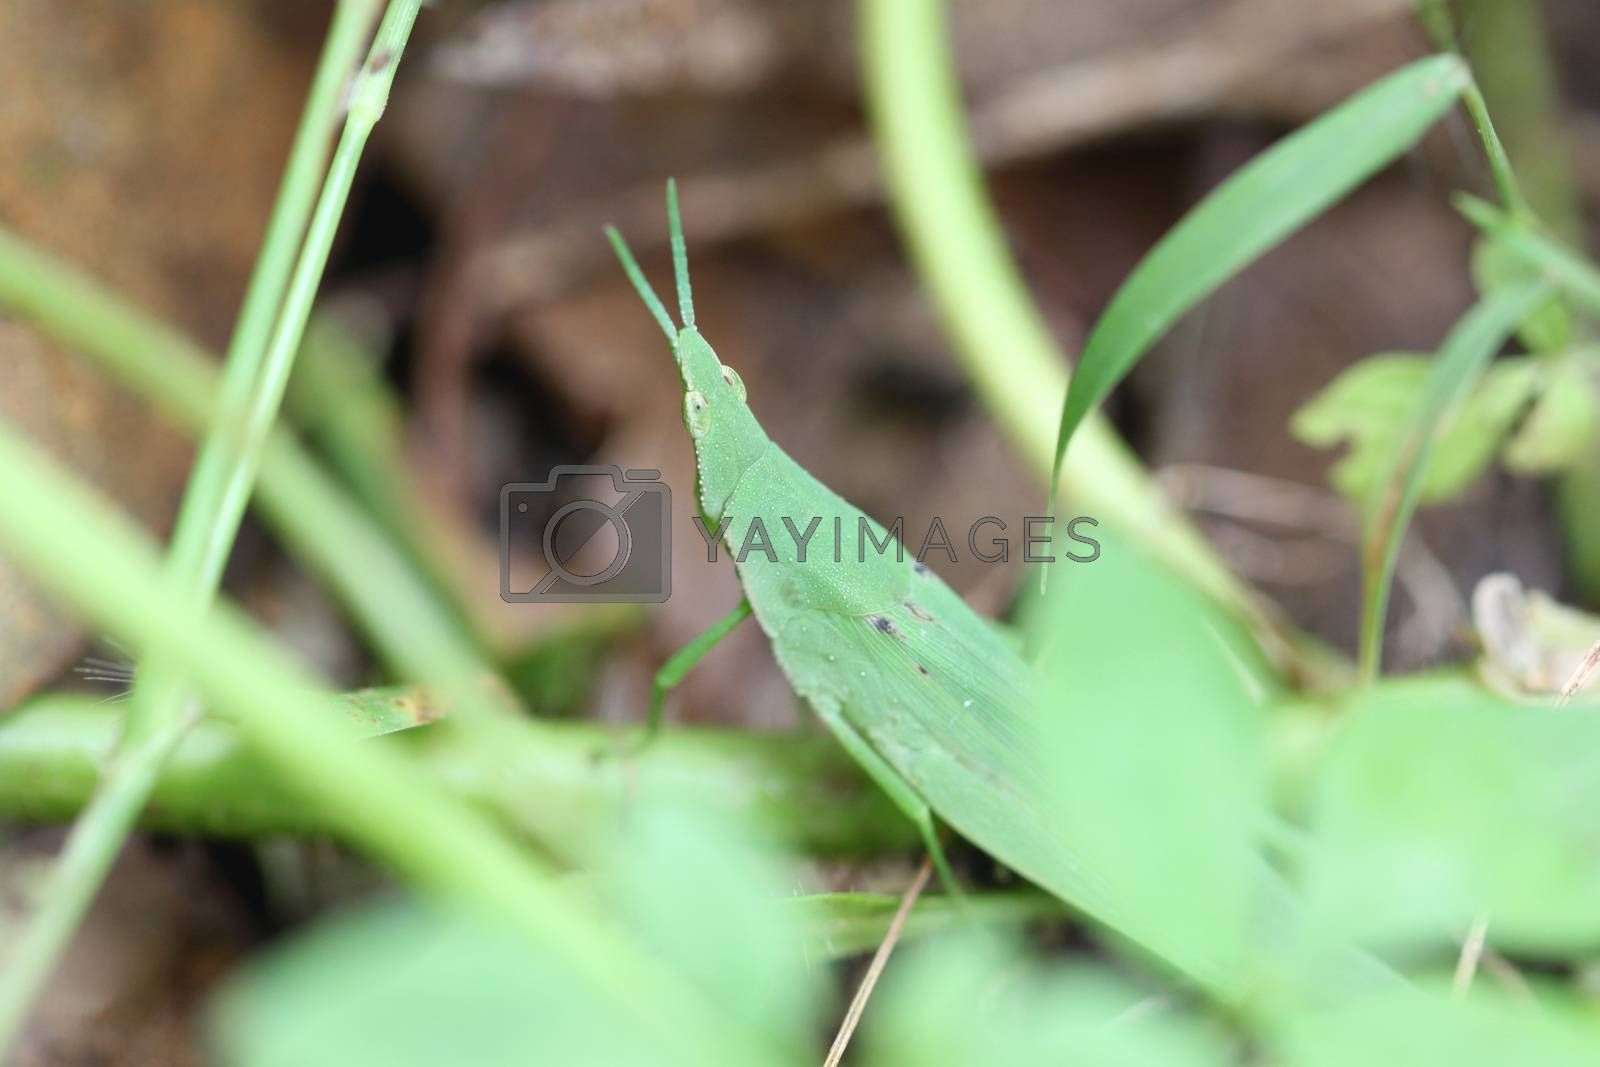 Green grasshopper perched on leaf in the garden.